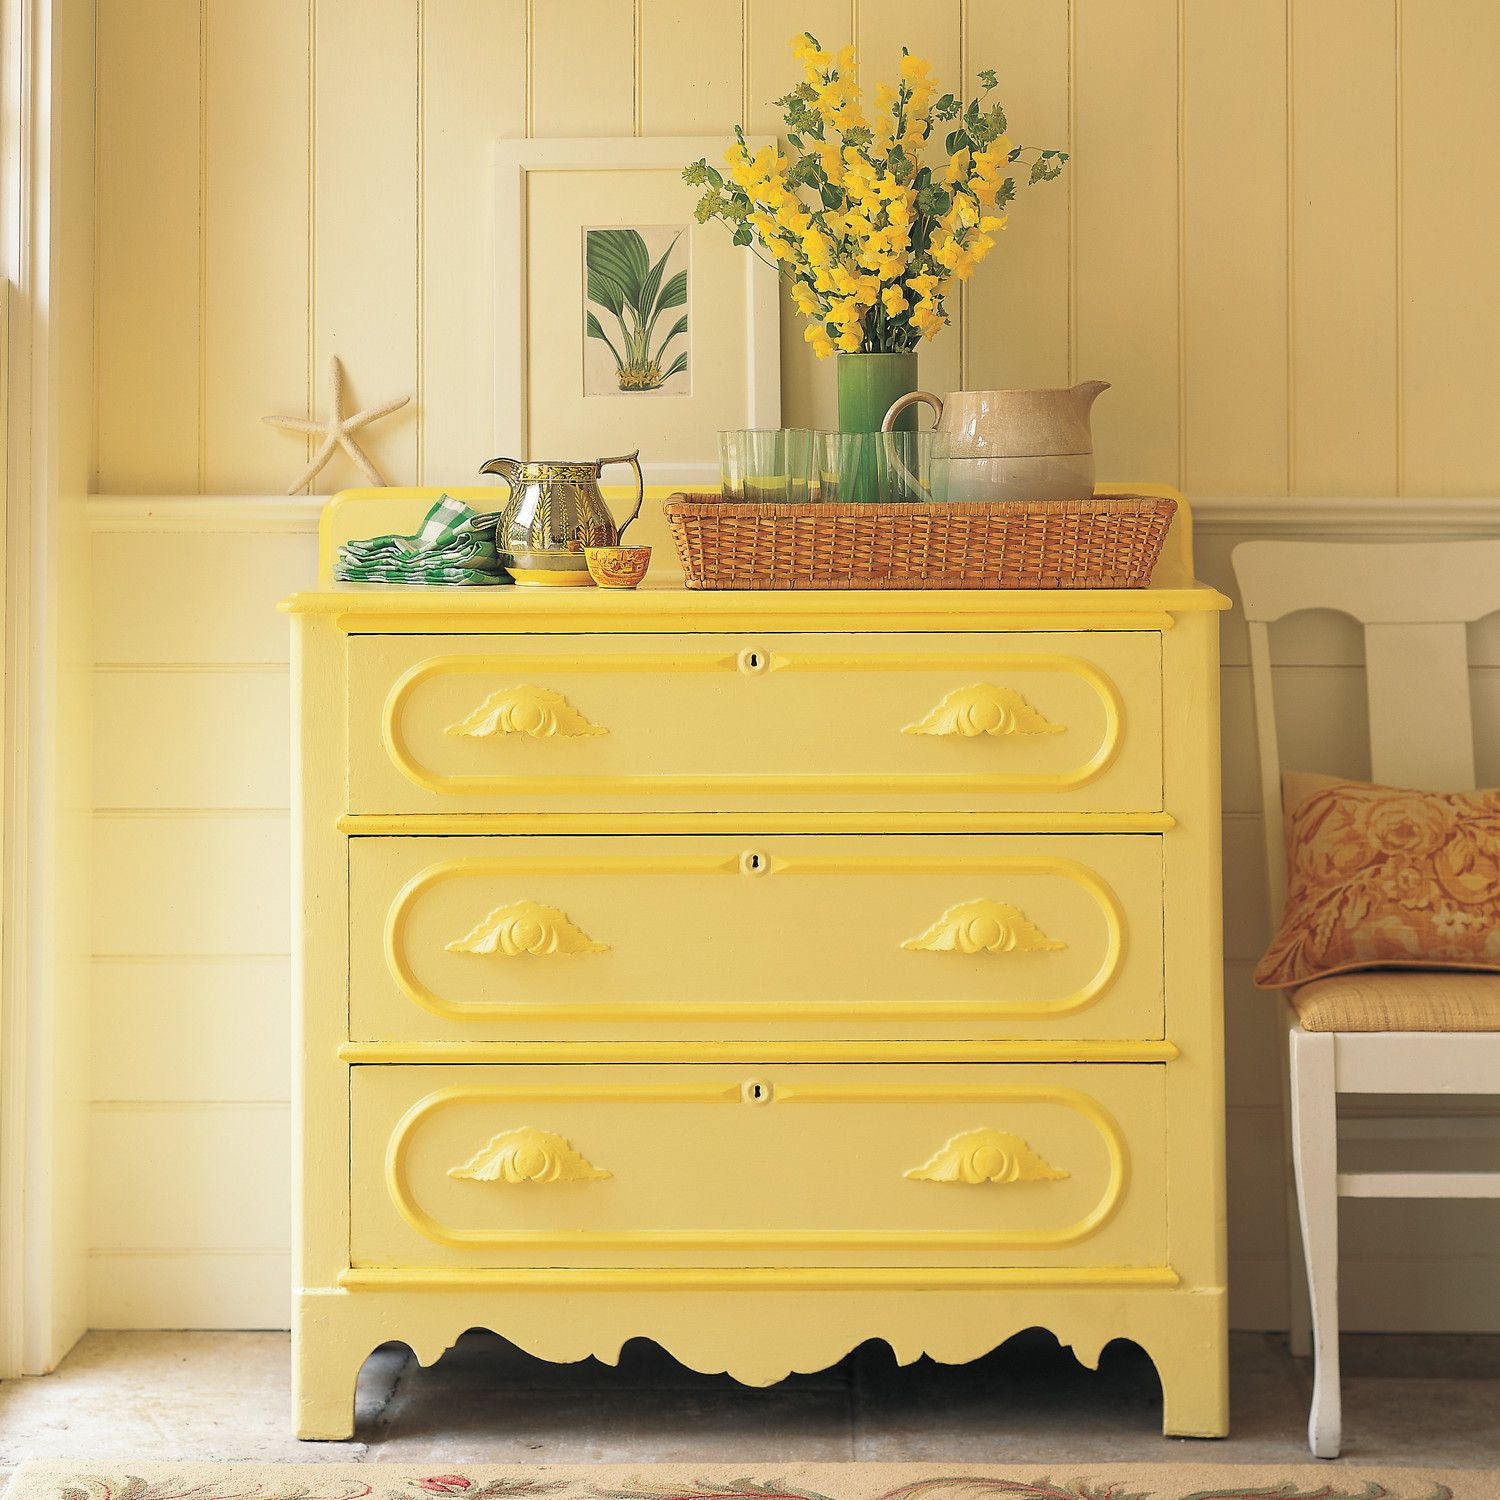 A Dab of Yellow | Orange rooms, Yellow painted furniture and Bedrooms